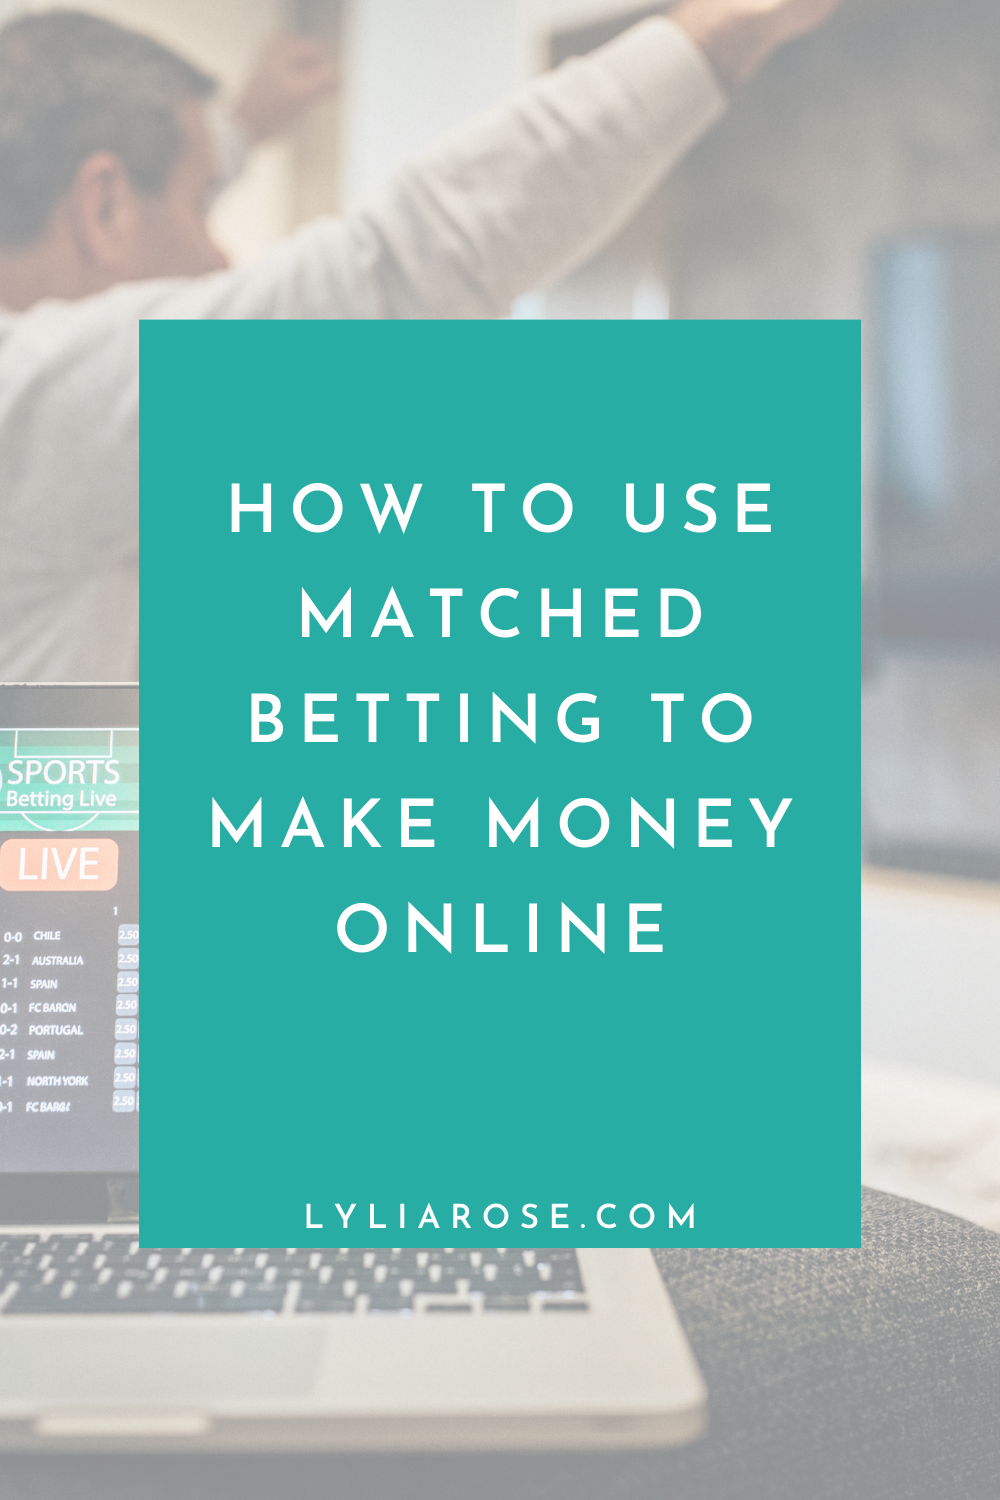 How to use matched betting to make money online